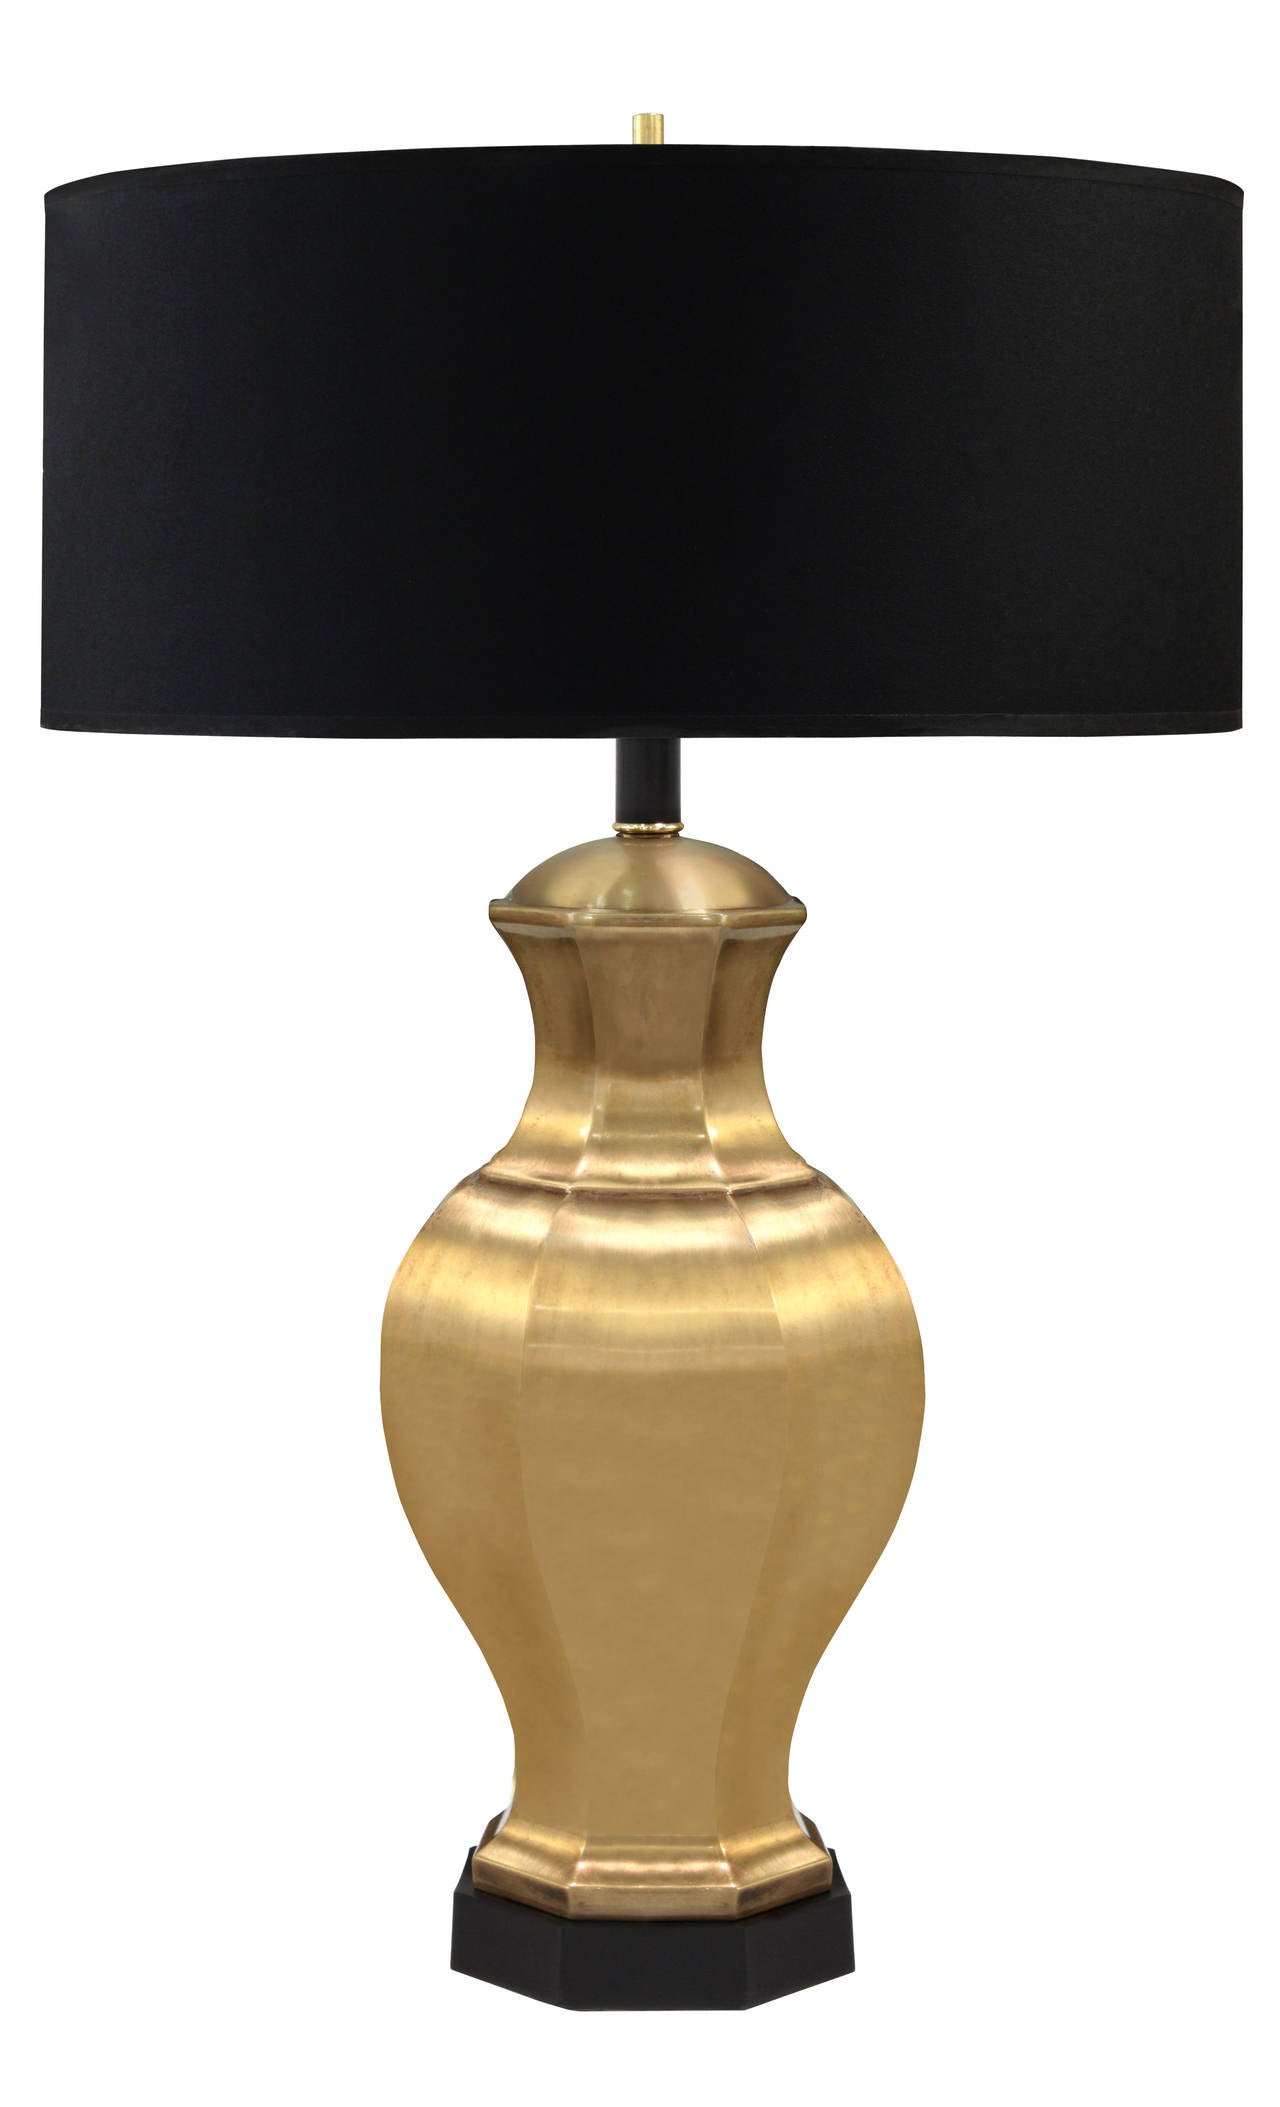 Pair of table lamps in satin brass with ebony base by Chapman Lighting, American, 1950s Shades pictured are 18 inches in diameter. The brass has been lacquered so it will not tarnish.